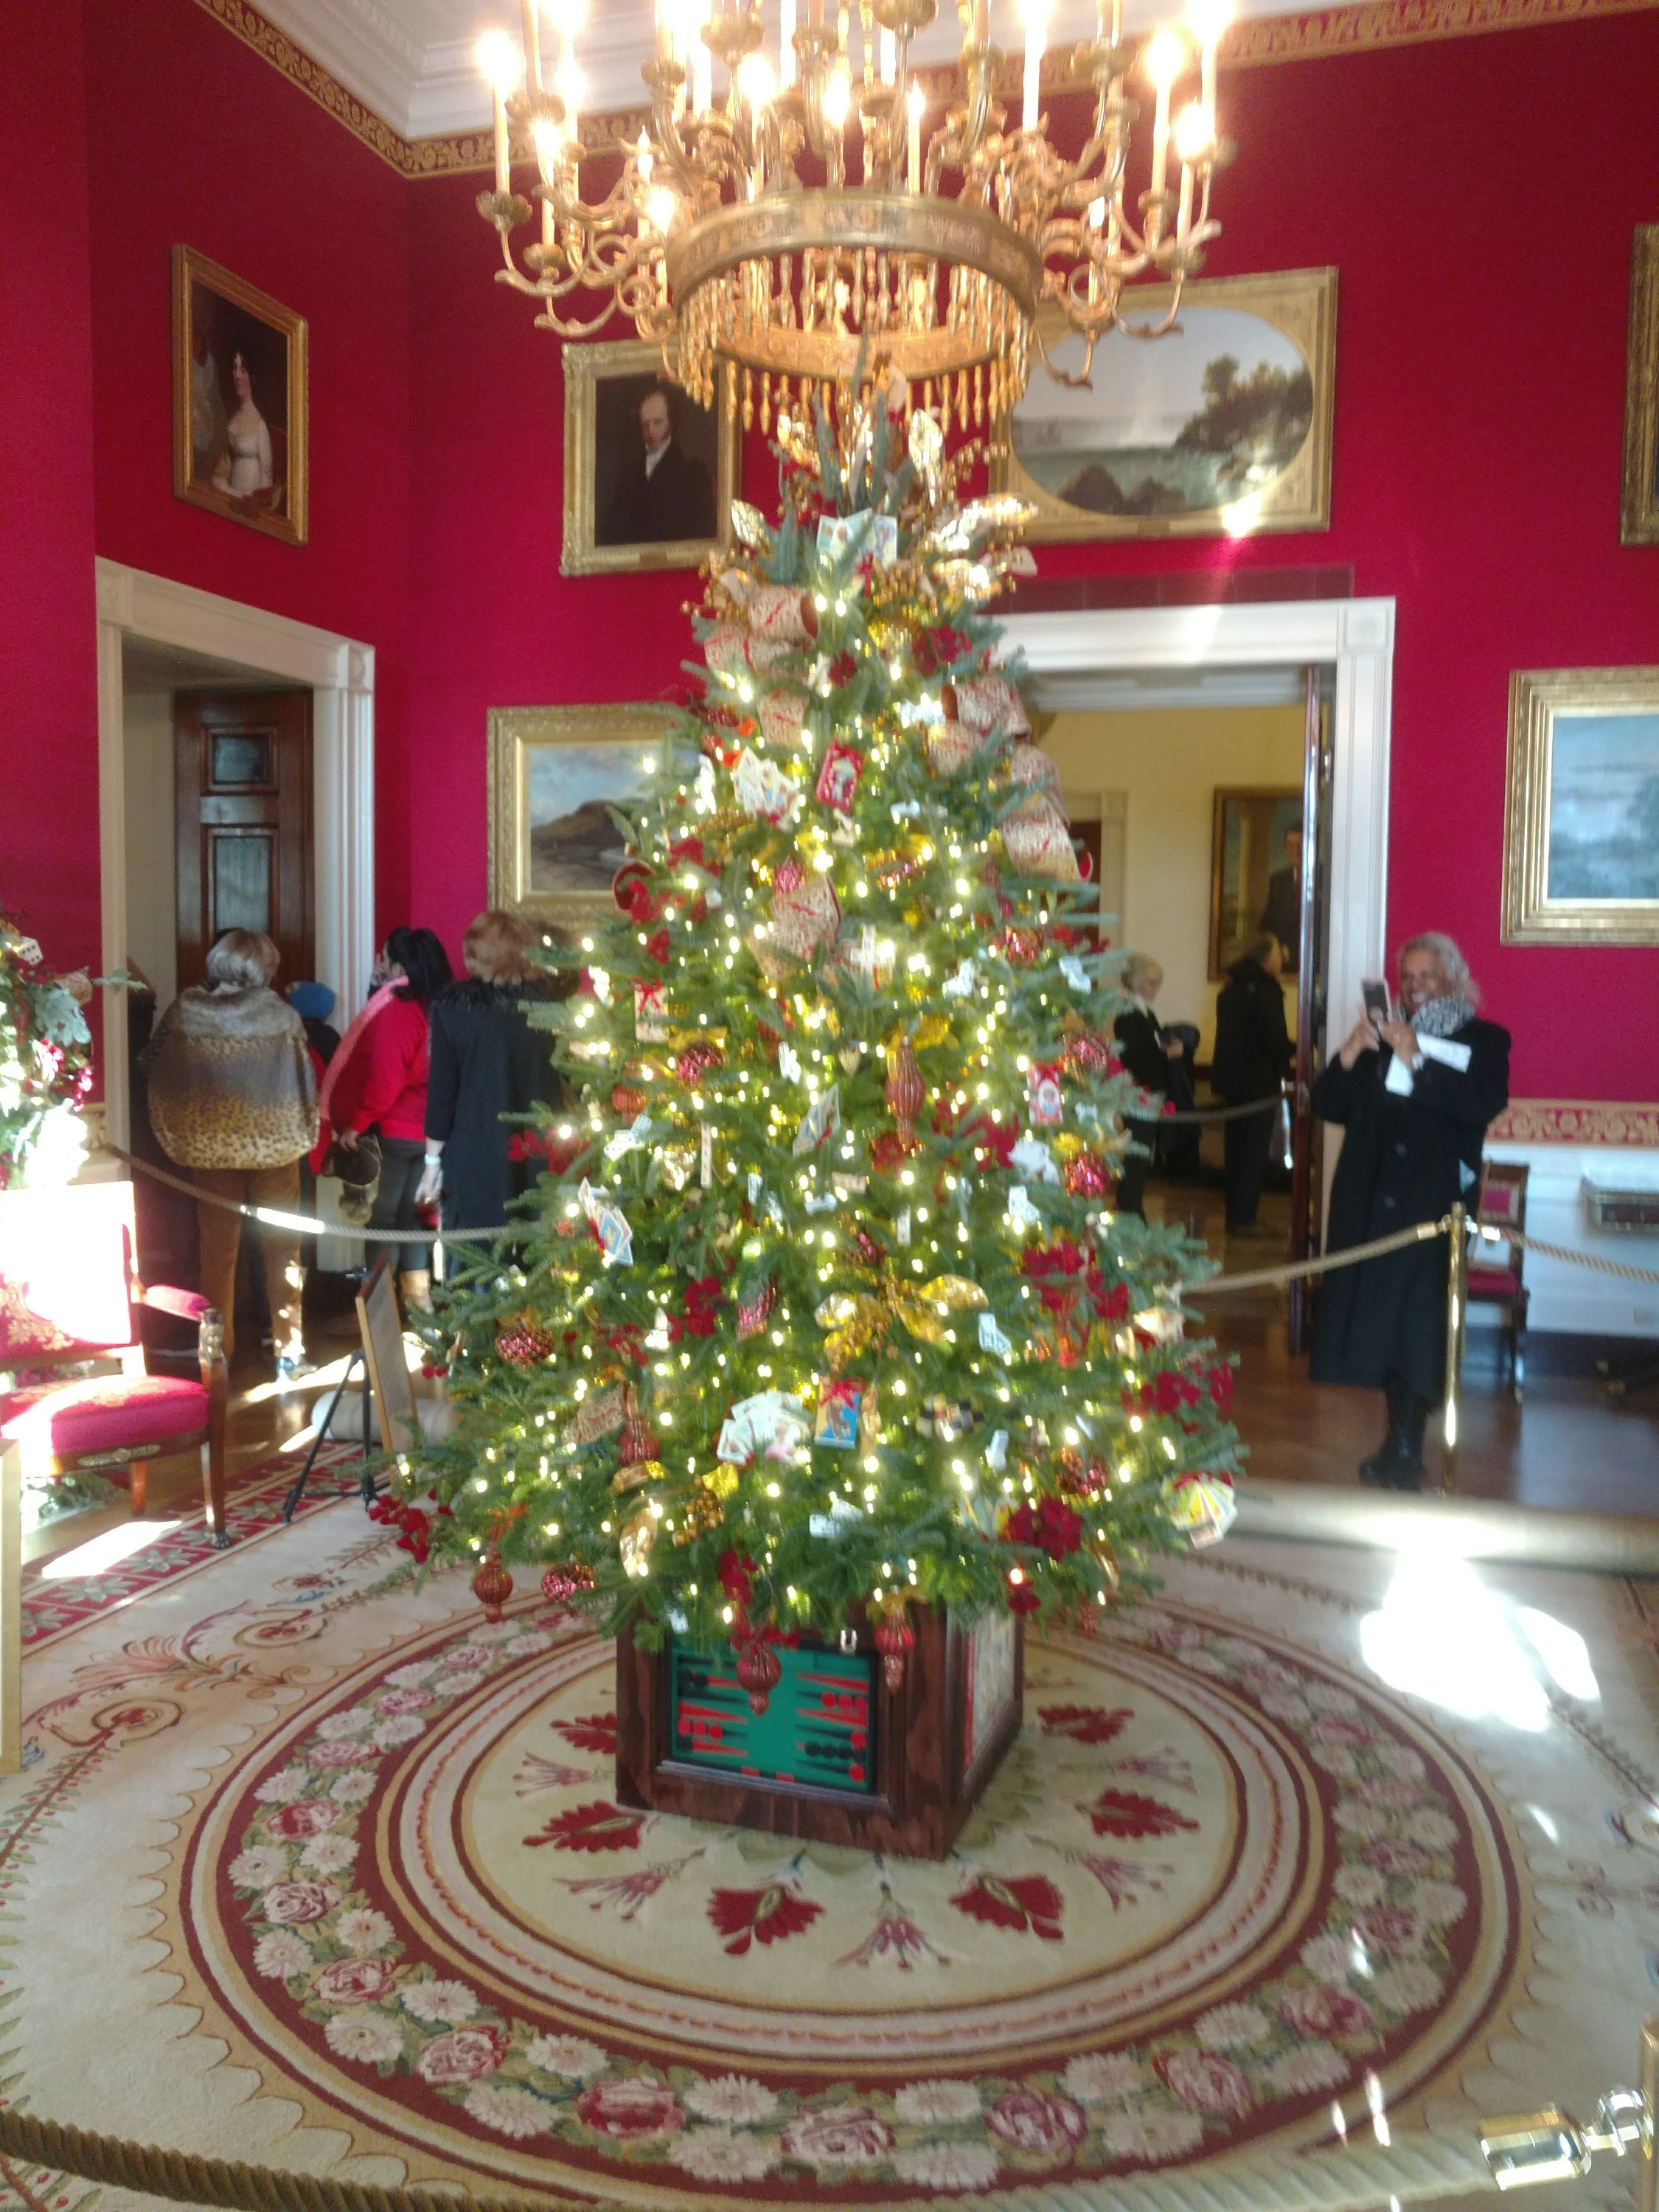 Christmas Tree in the Red Room at the White House.